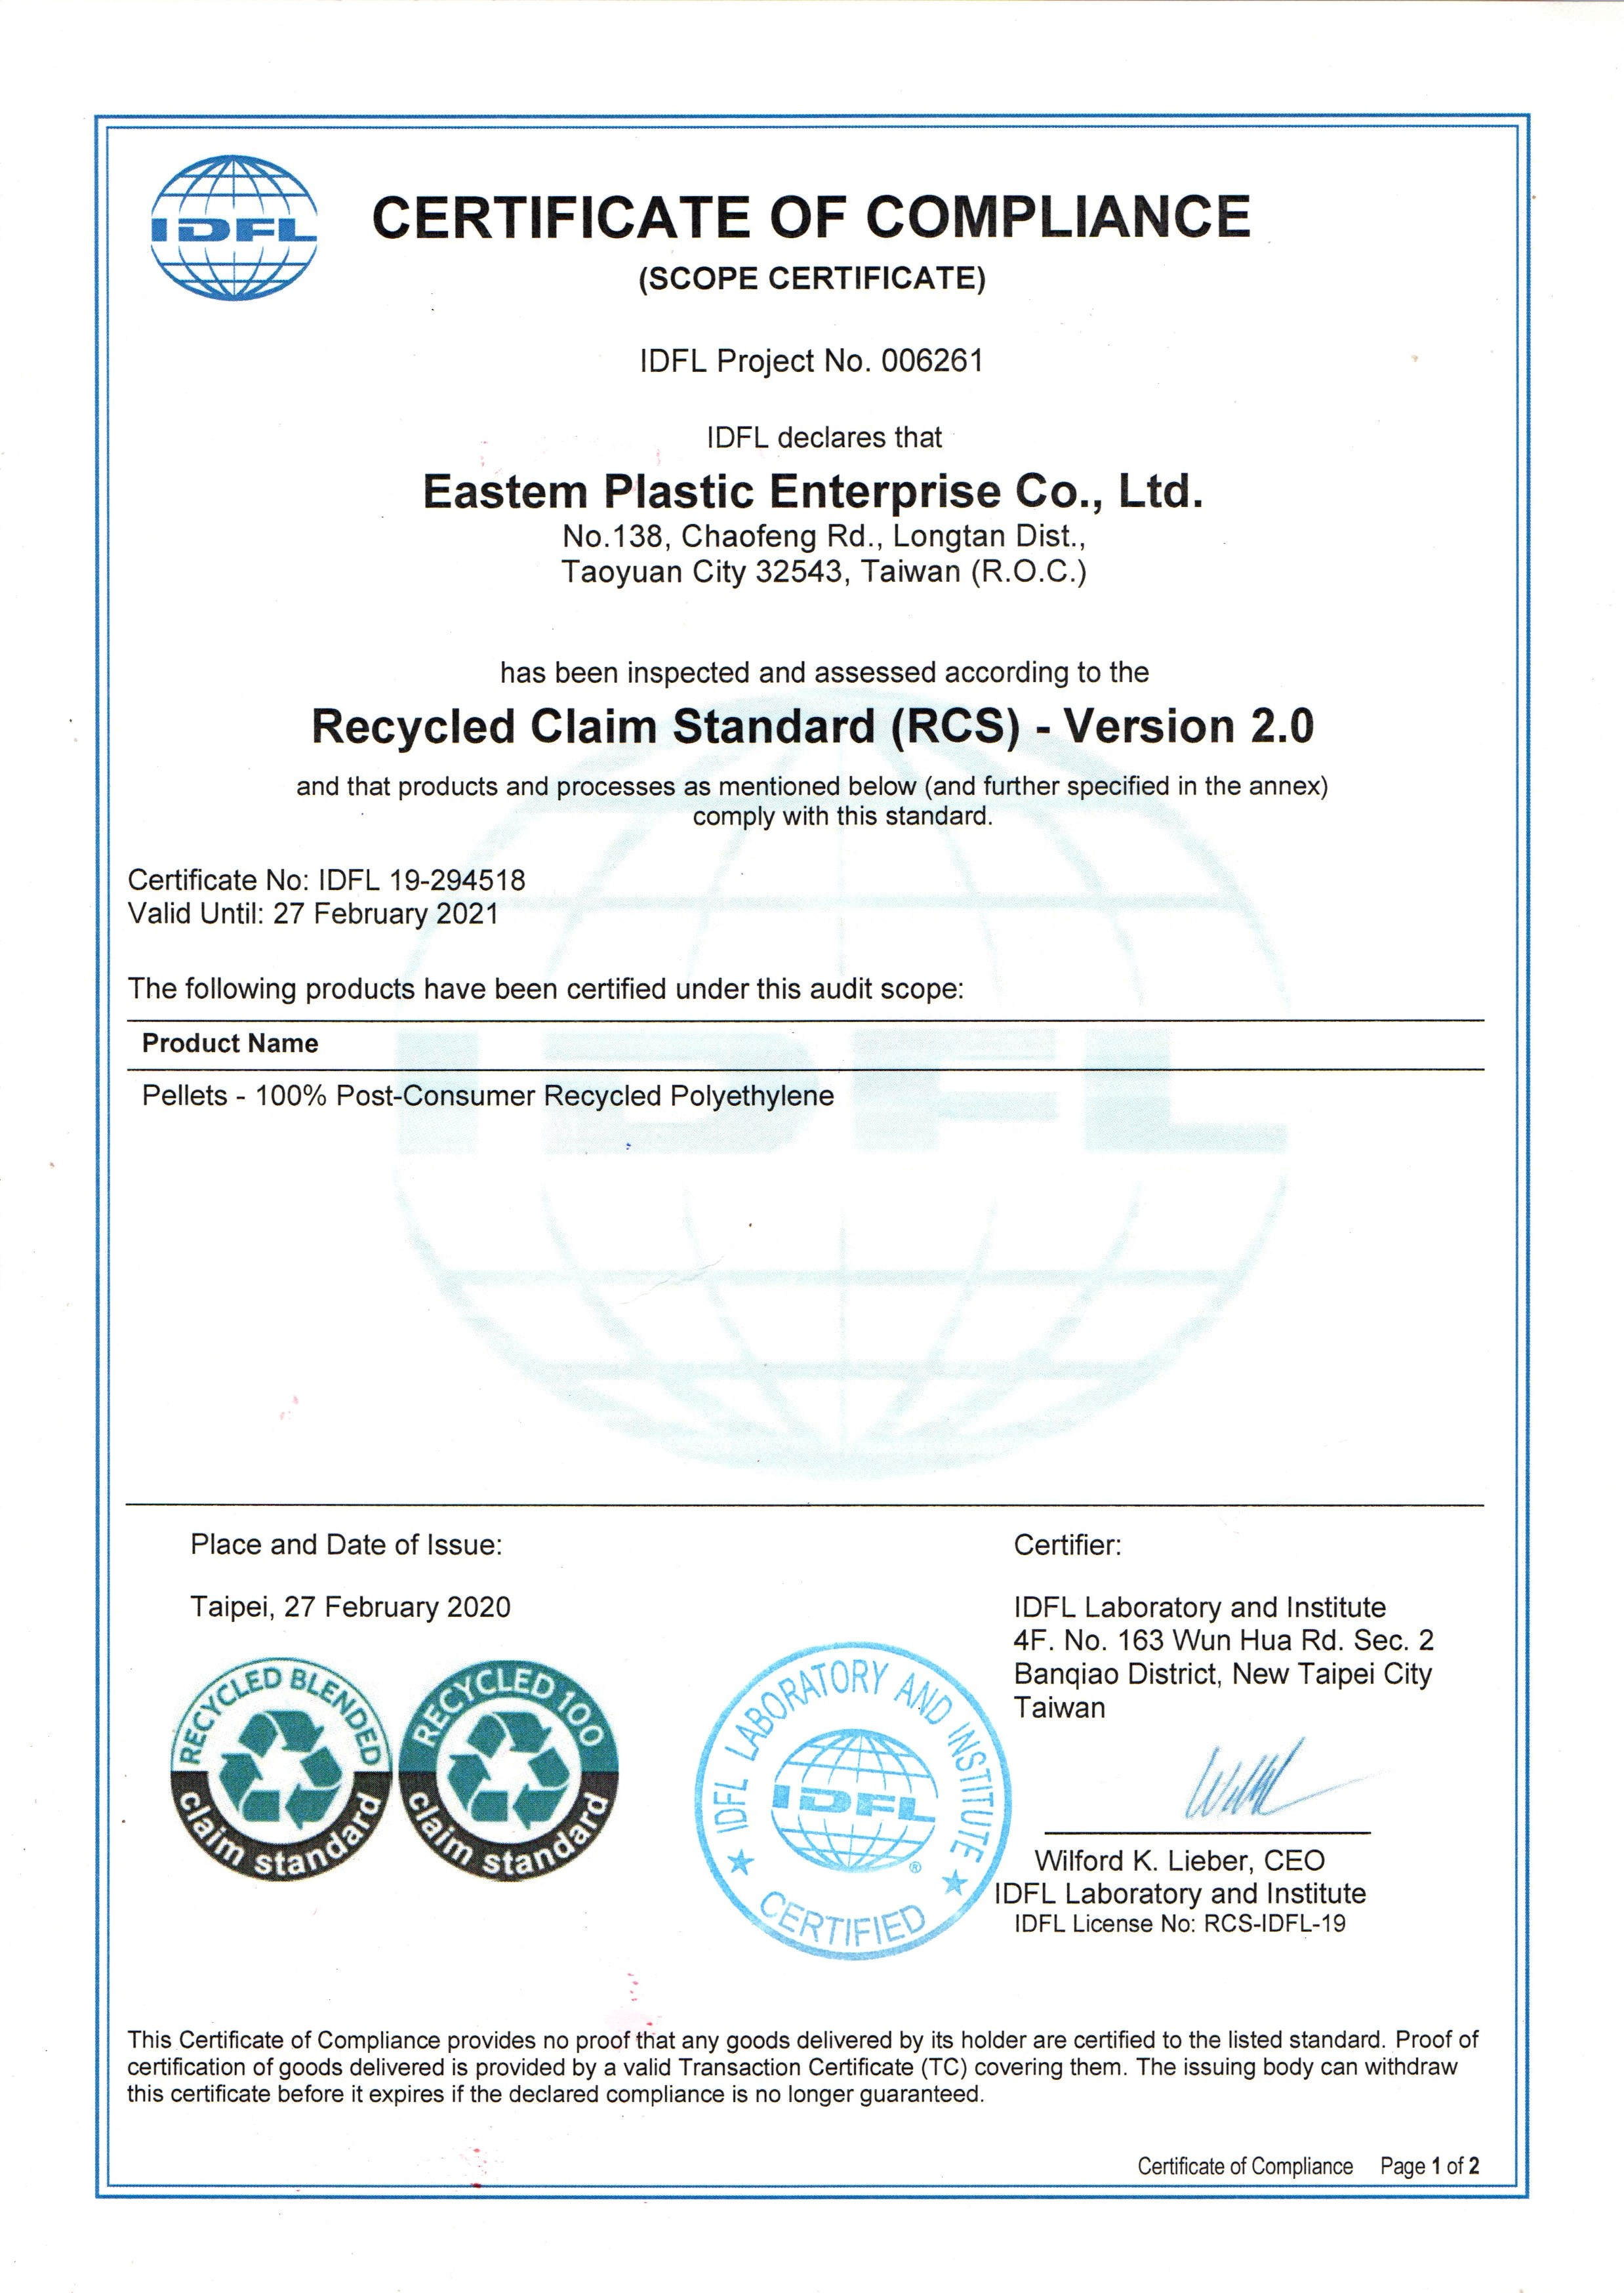 Certificate of Recycled Claim Standard(RCS)再循環聲明標準認證